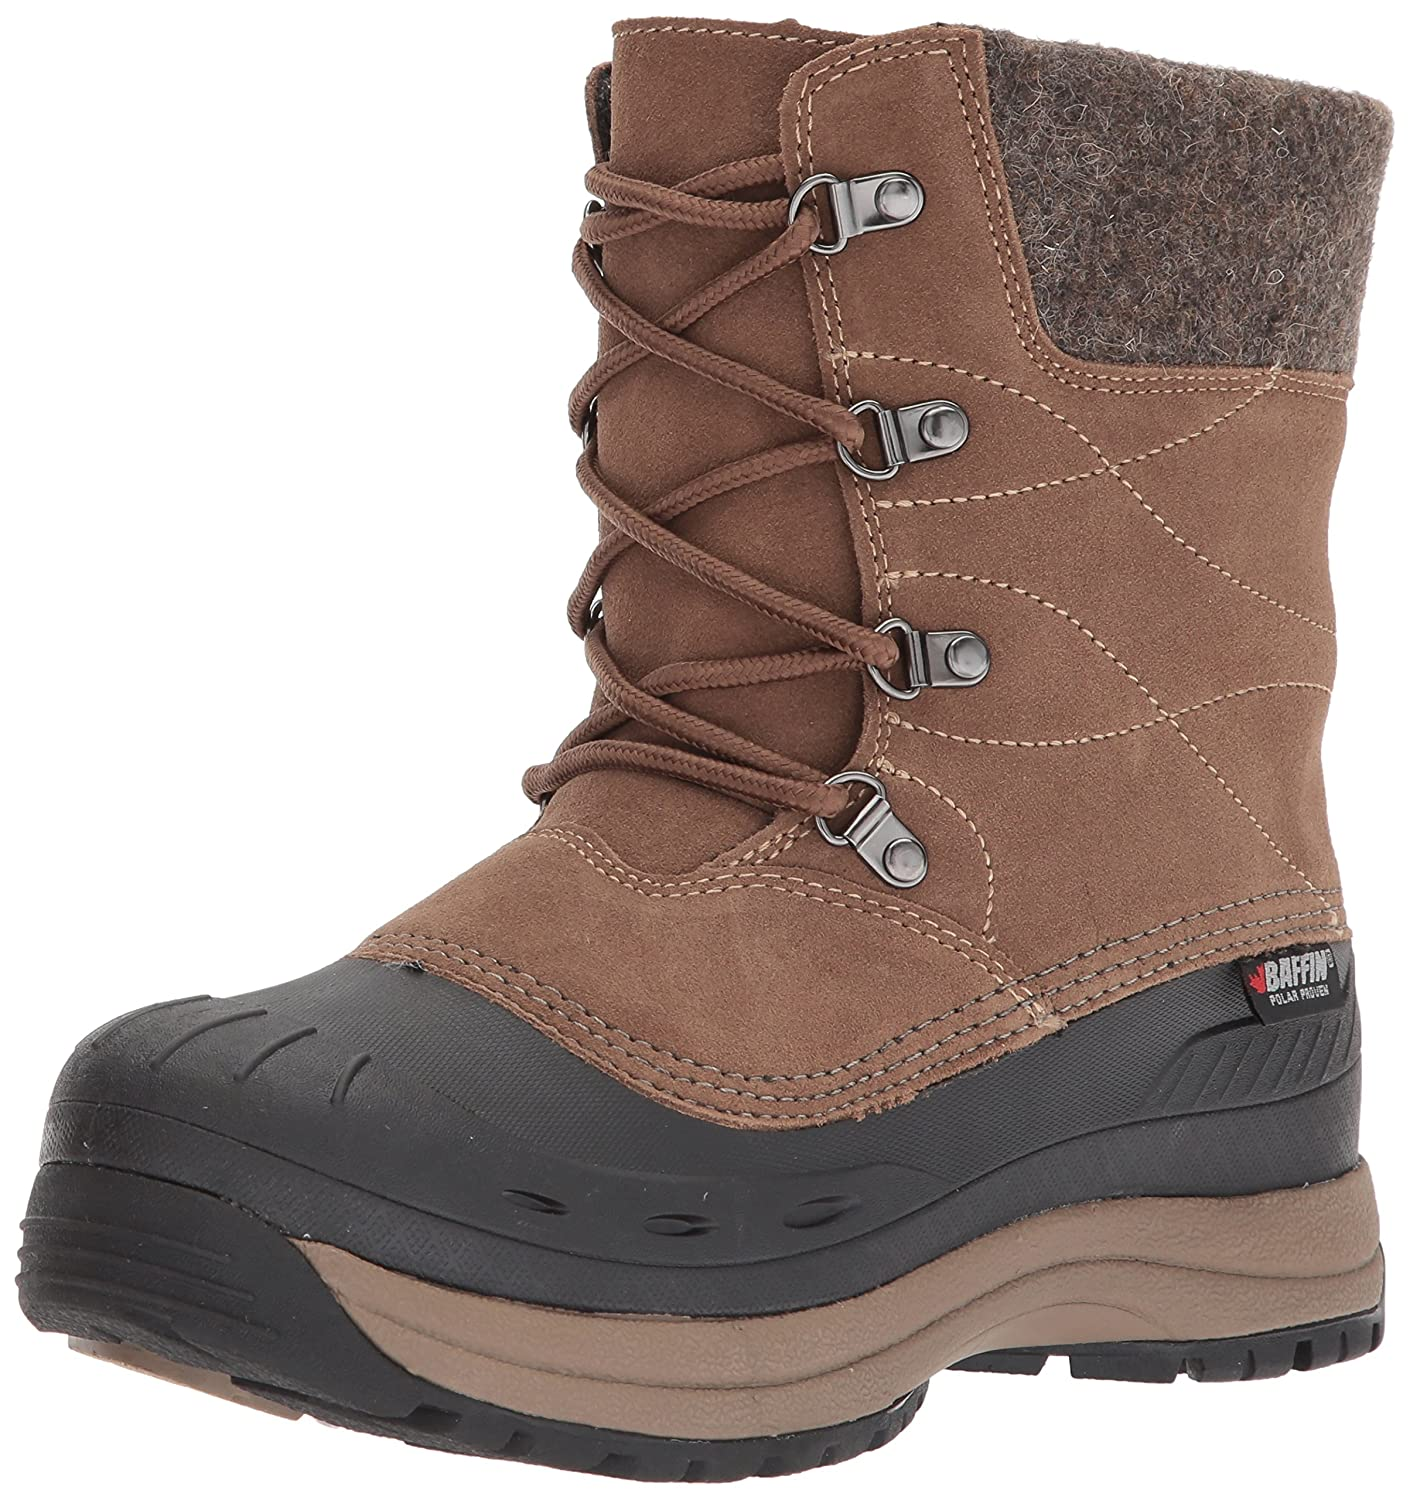 Baffin Women's Arnaq Snow Boots, Taupe, 10 M US Baffin Womens DRIFW021